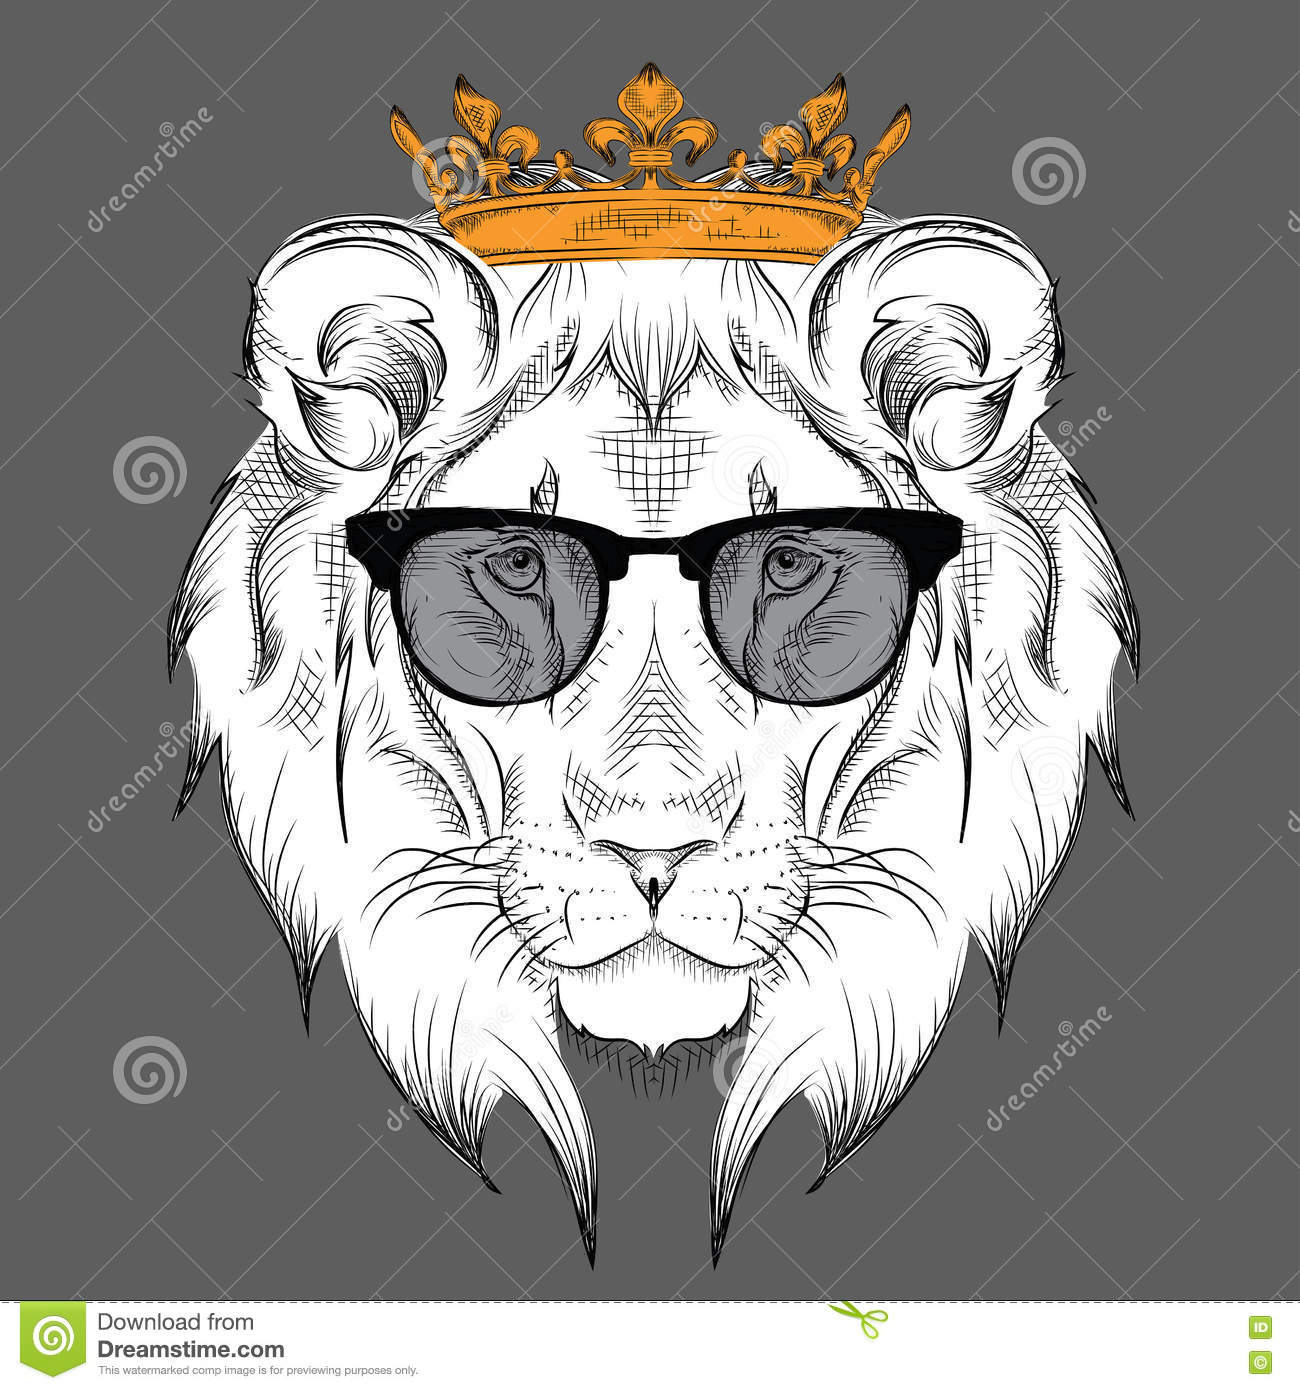 Ethnic Hand Drawing Head Of Lion Wearing A Crown And In The Glasses